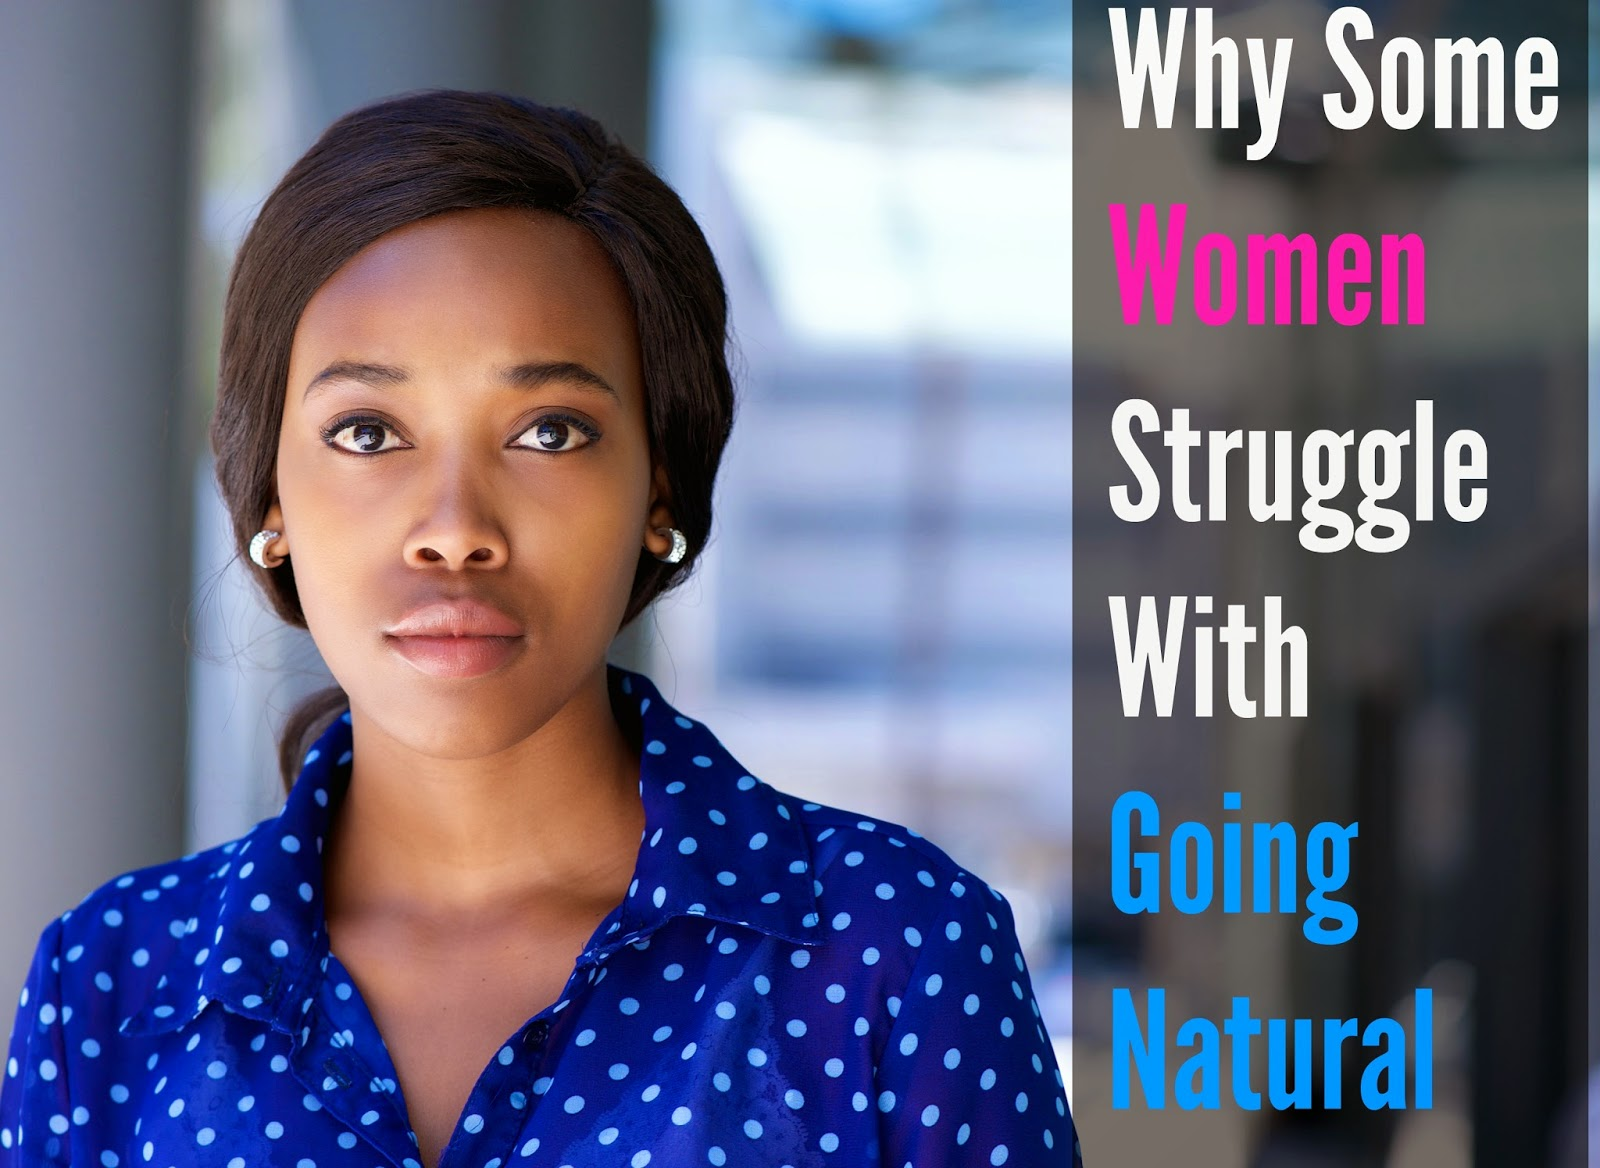 Why Some Women Struggle With Going Natural